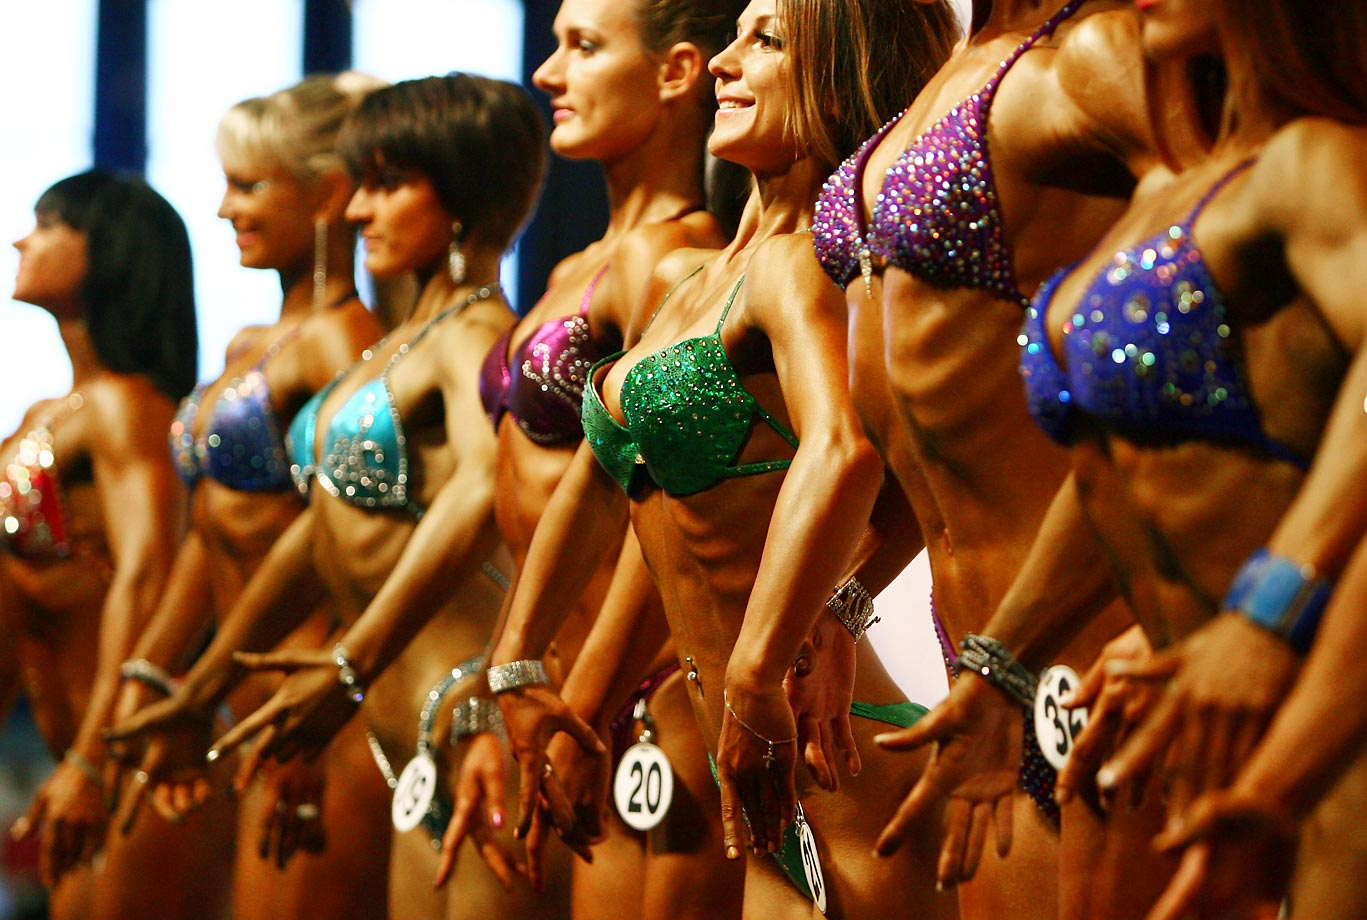 Bodybuilders flex their muscles during the Bodybuilding Championship in Belarus.